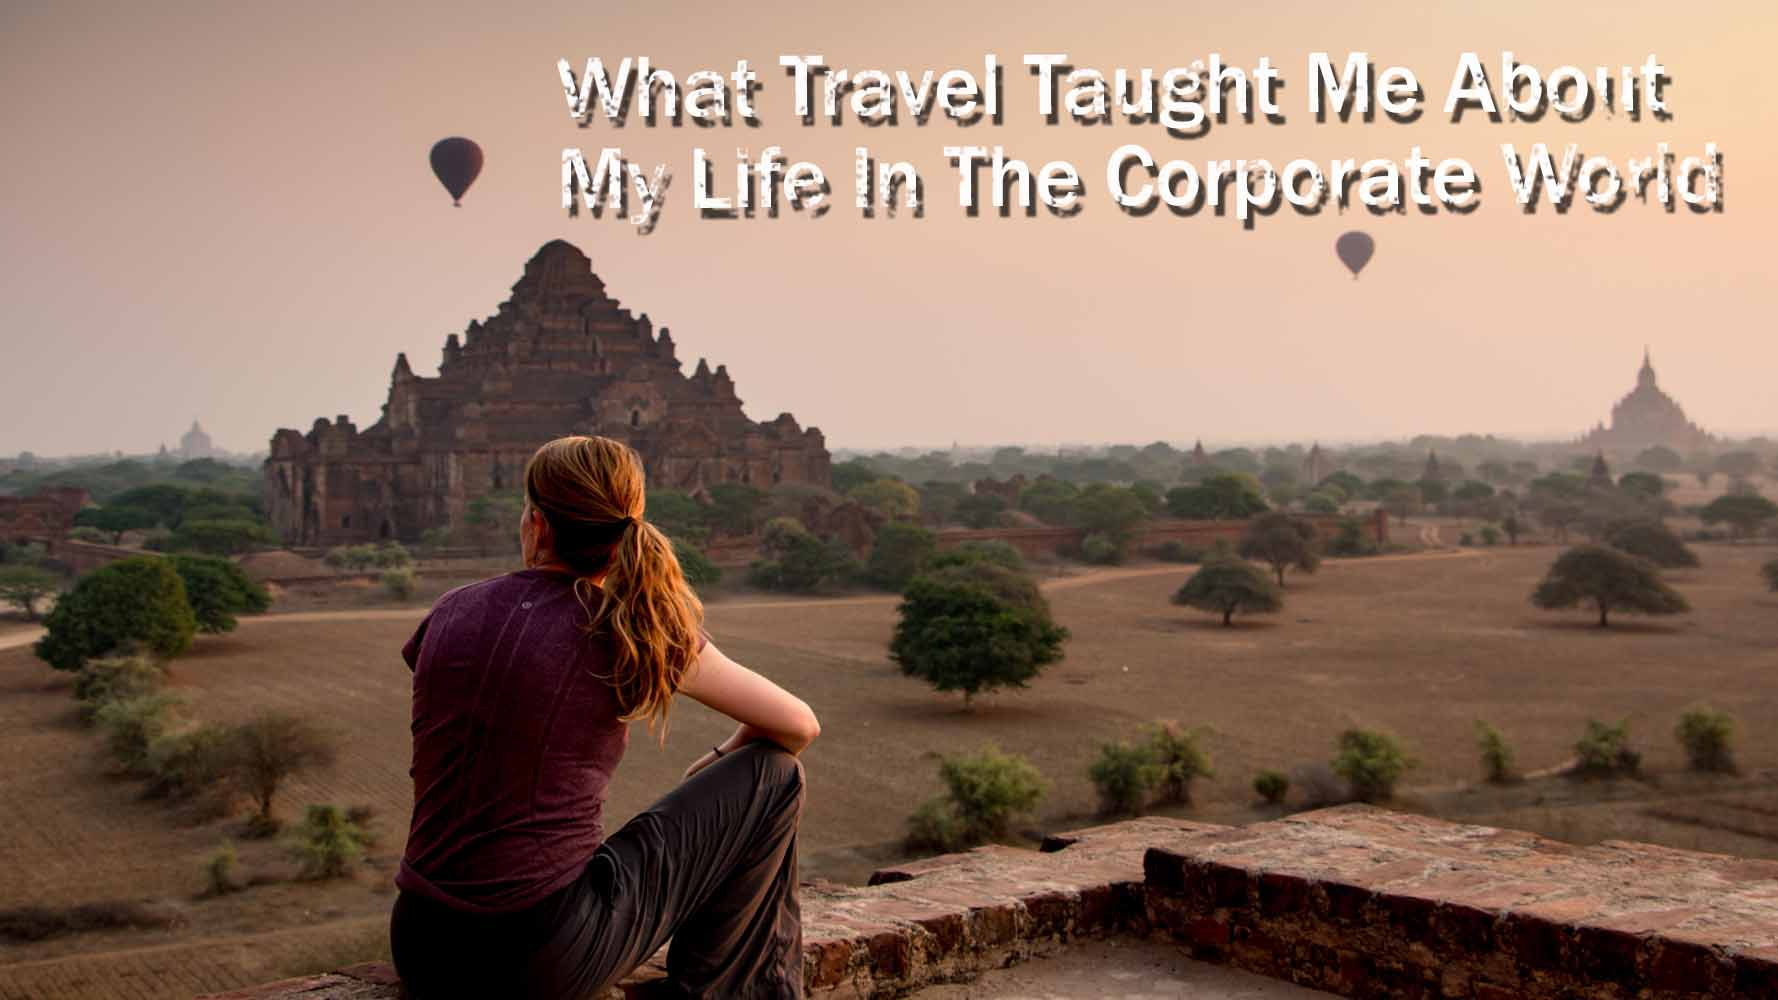 Travel_Taught_Corp